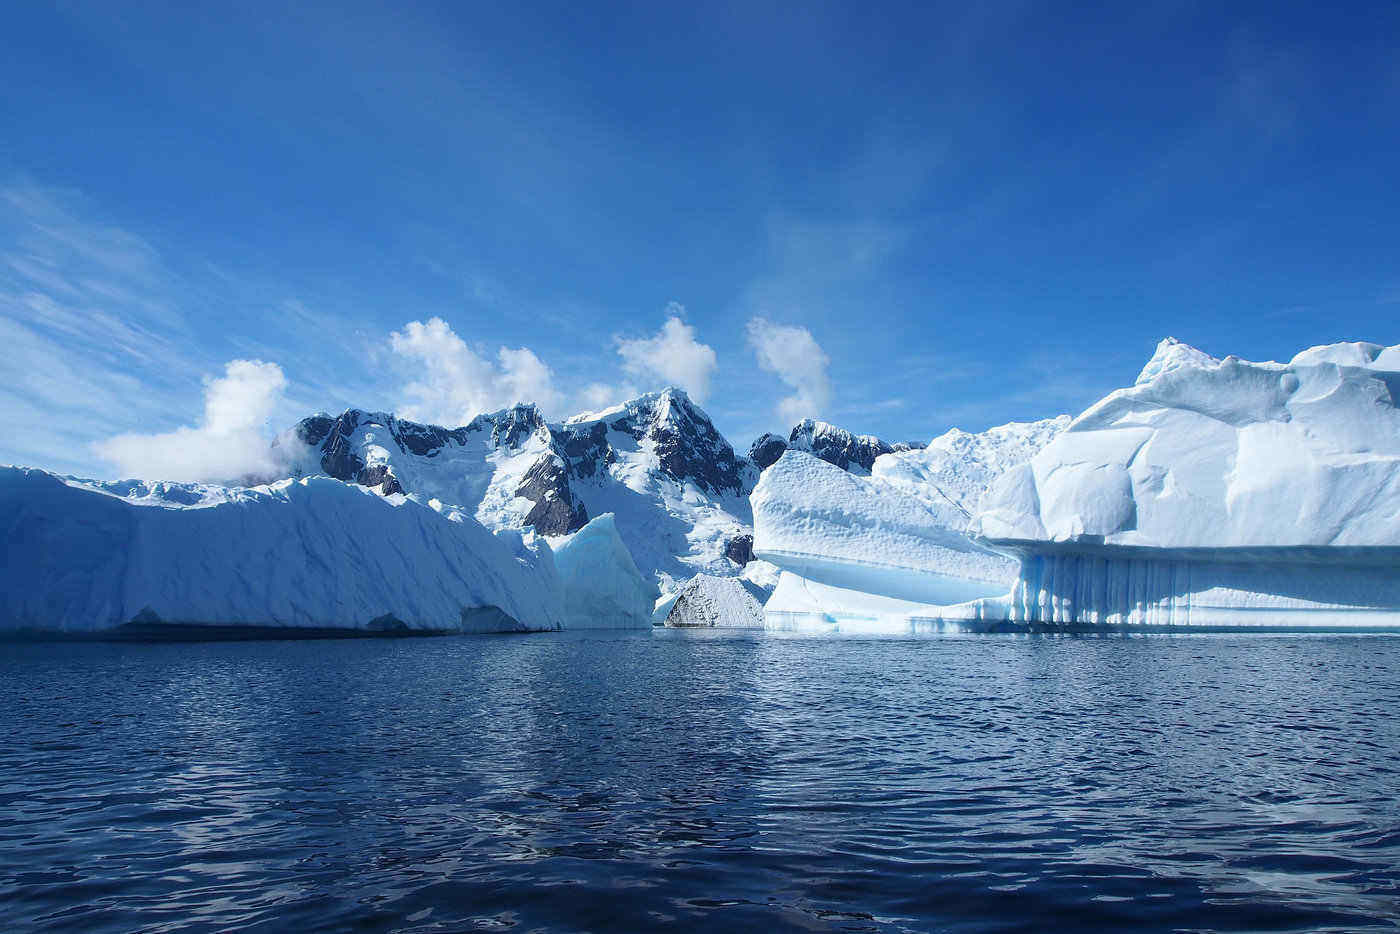 antarctica - 15 most beautiful places on earth